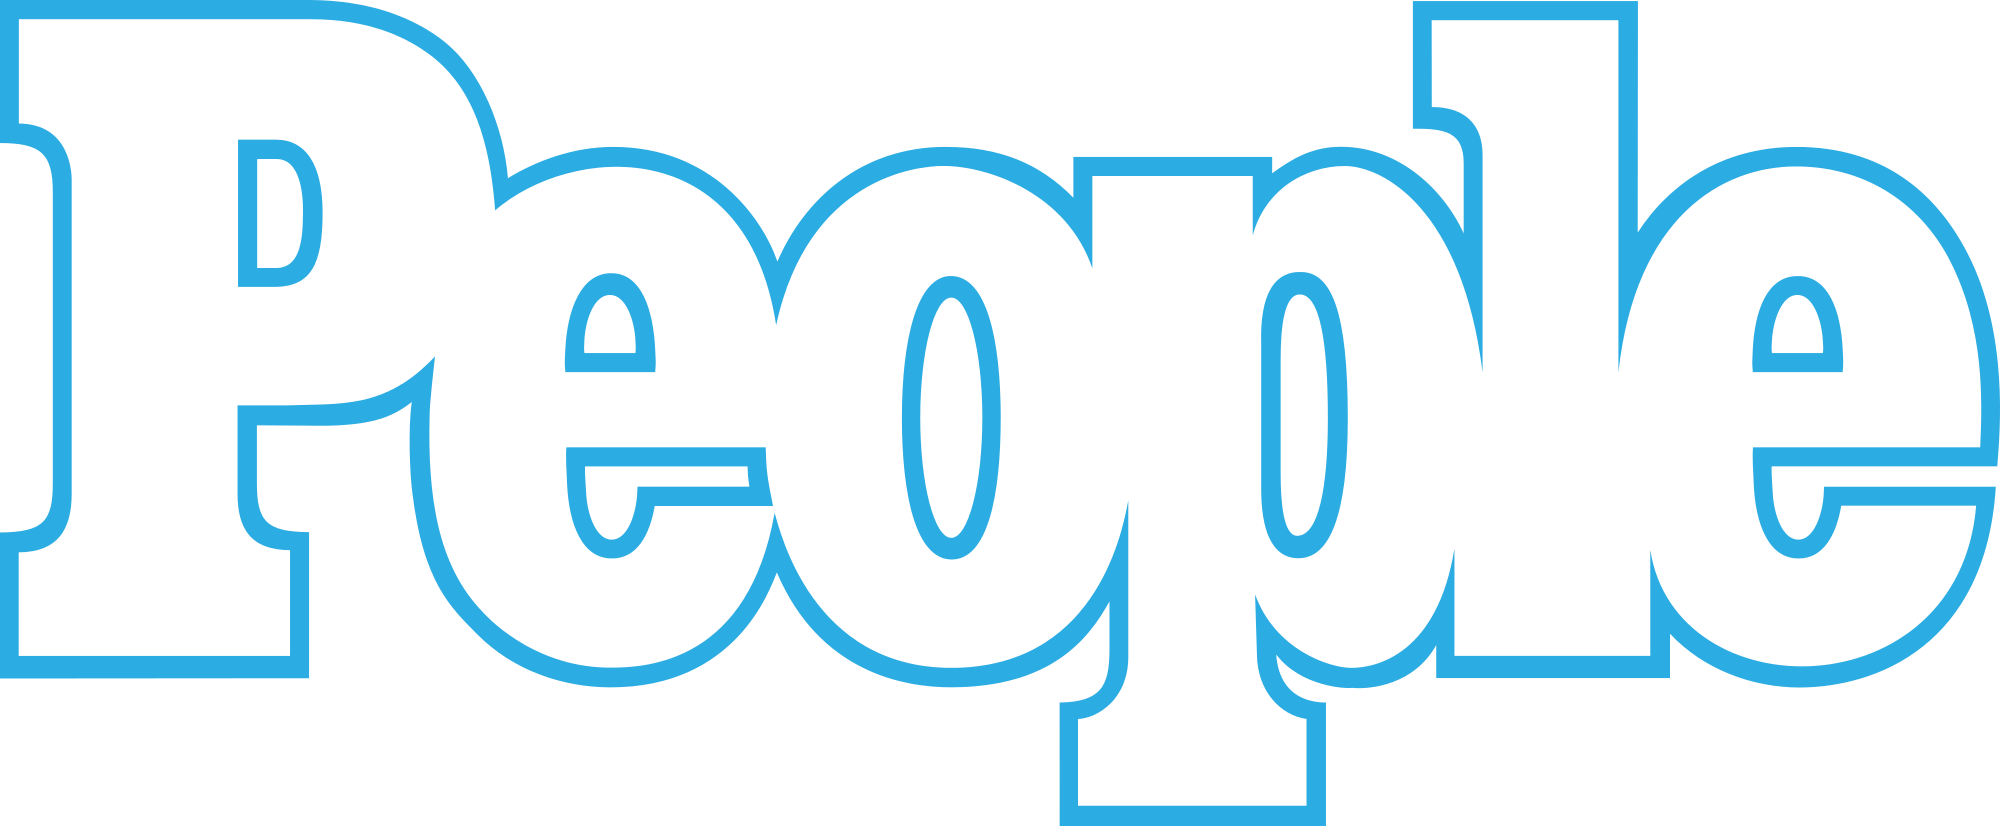 People_Magazine_logo.svg